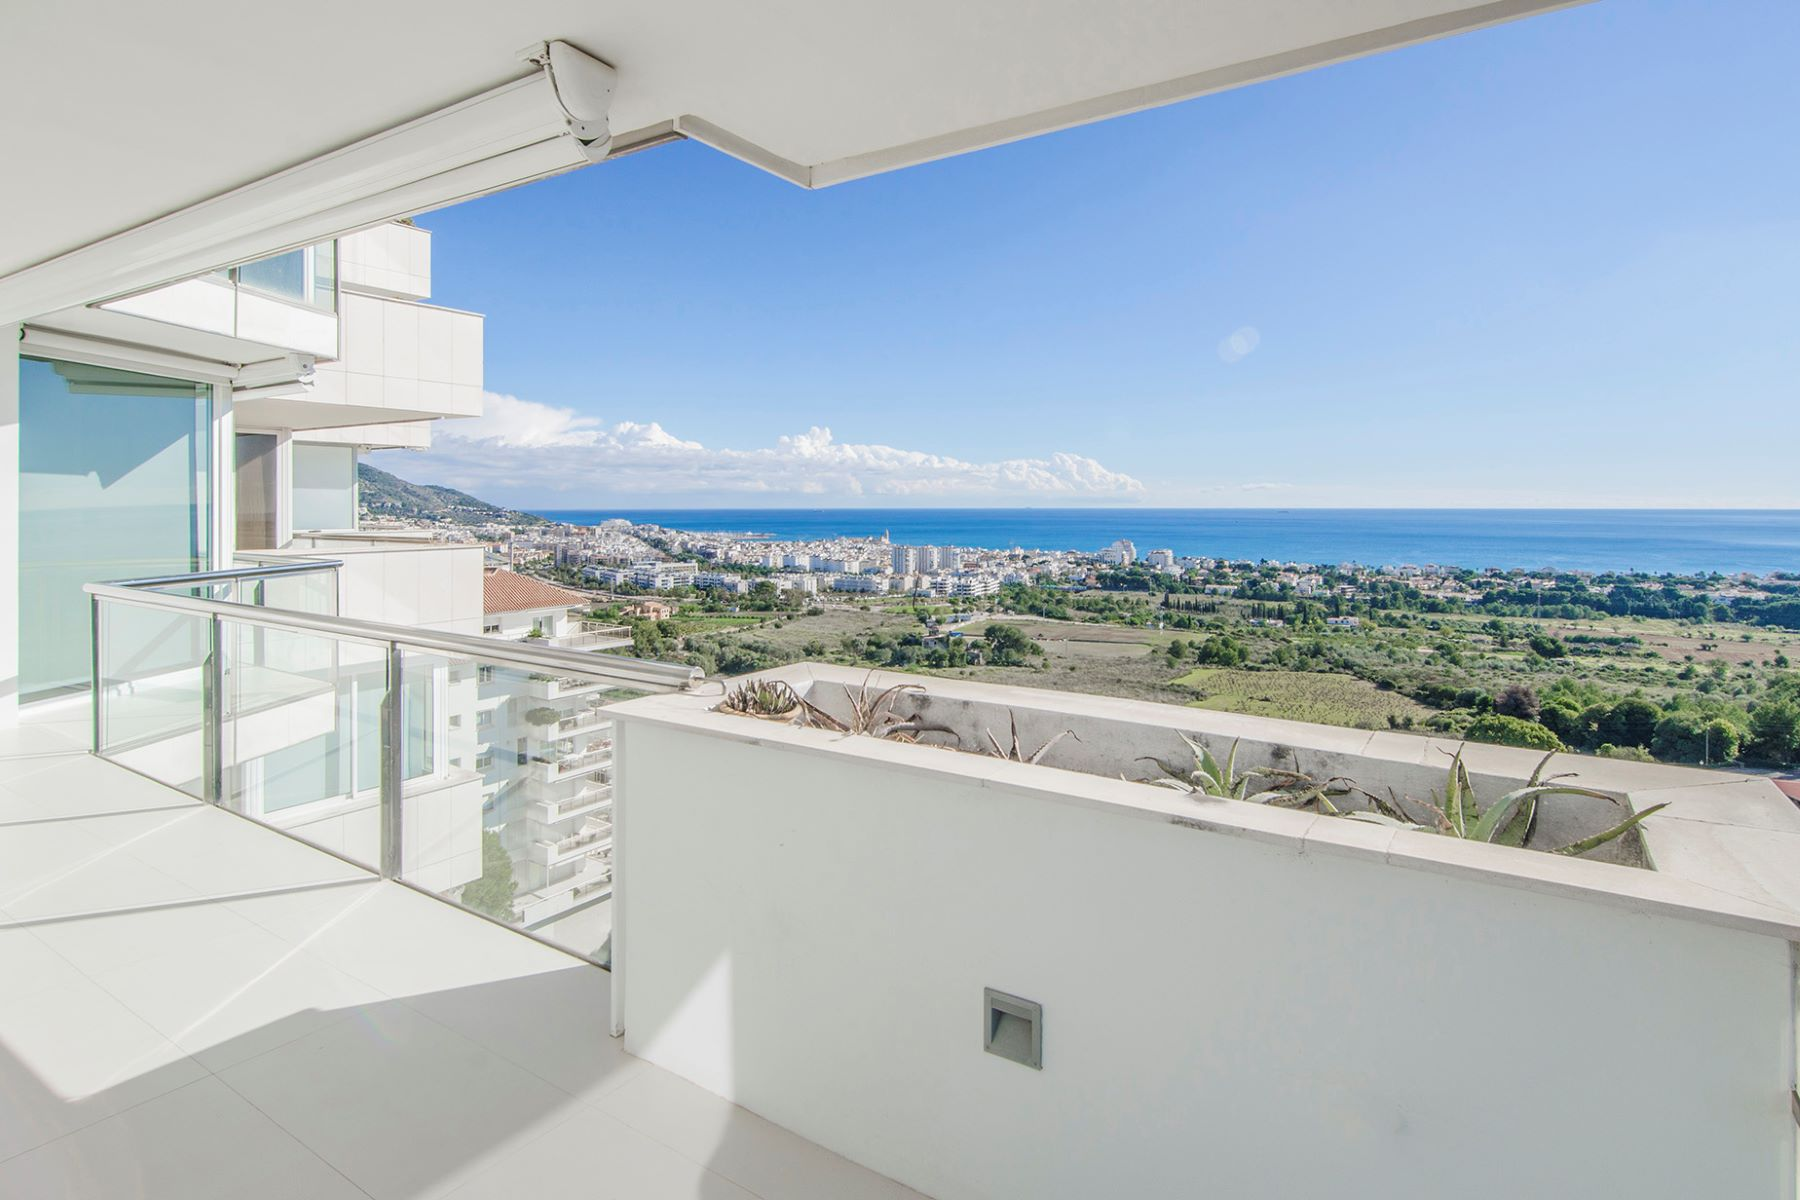 Appartement pour l Vente à Stunning Apartment with Views to Sitges Sitges, Barcelona, 08870 Espagne